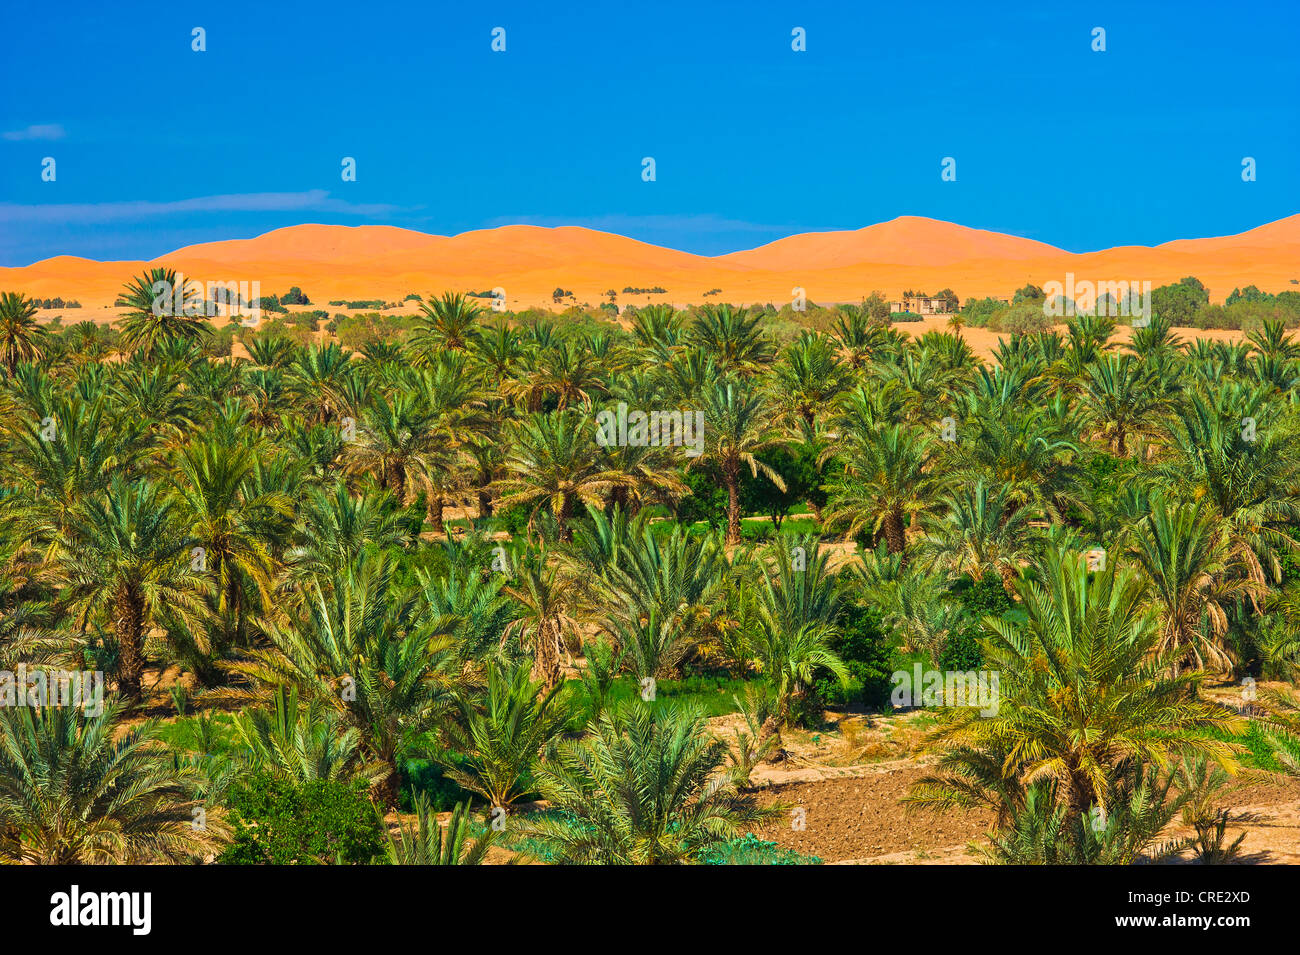 Palm grove, Date palms (Phoenix) in front of the sand dunes of Erg Chebbi, Sahara, southern Morocco, Africa - Stock Image